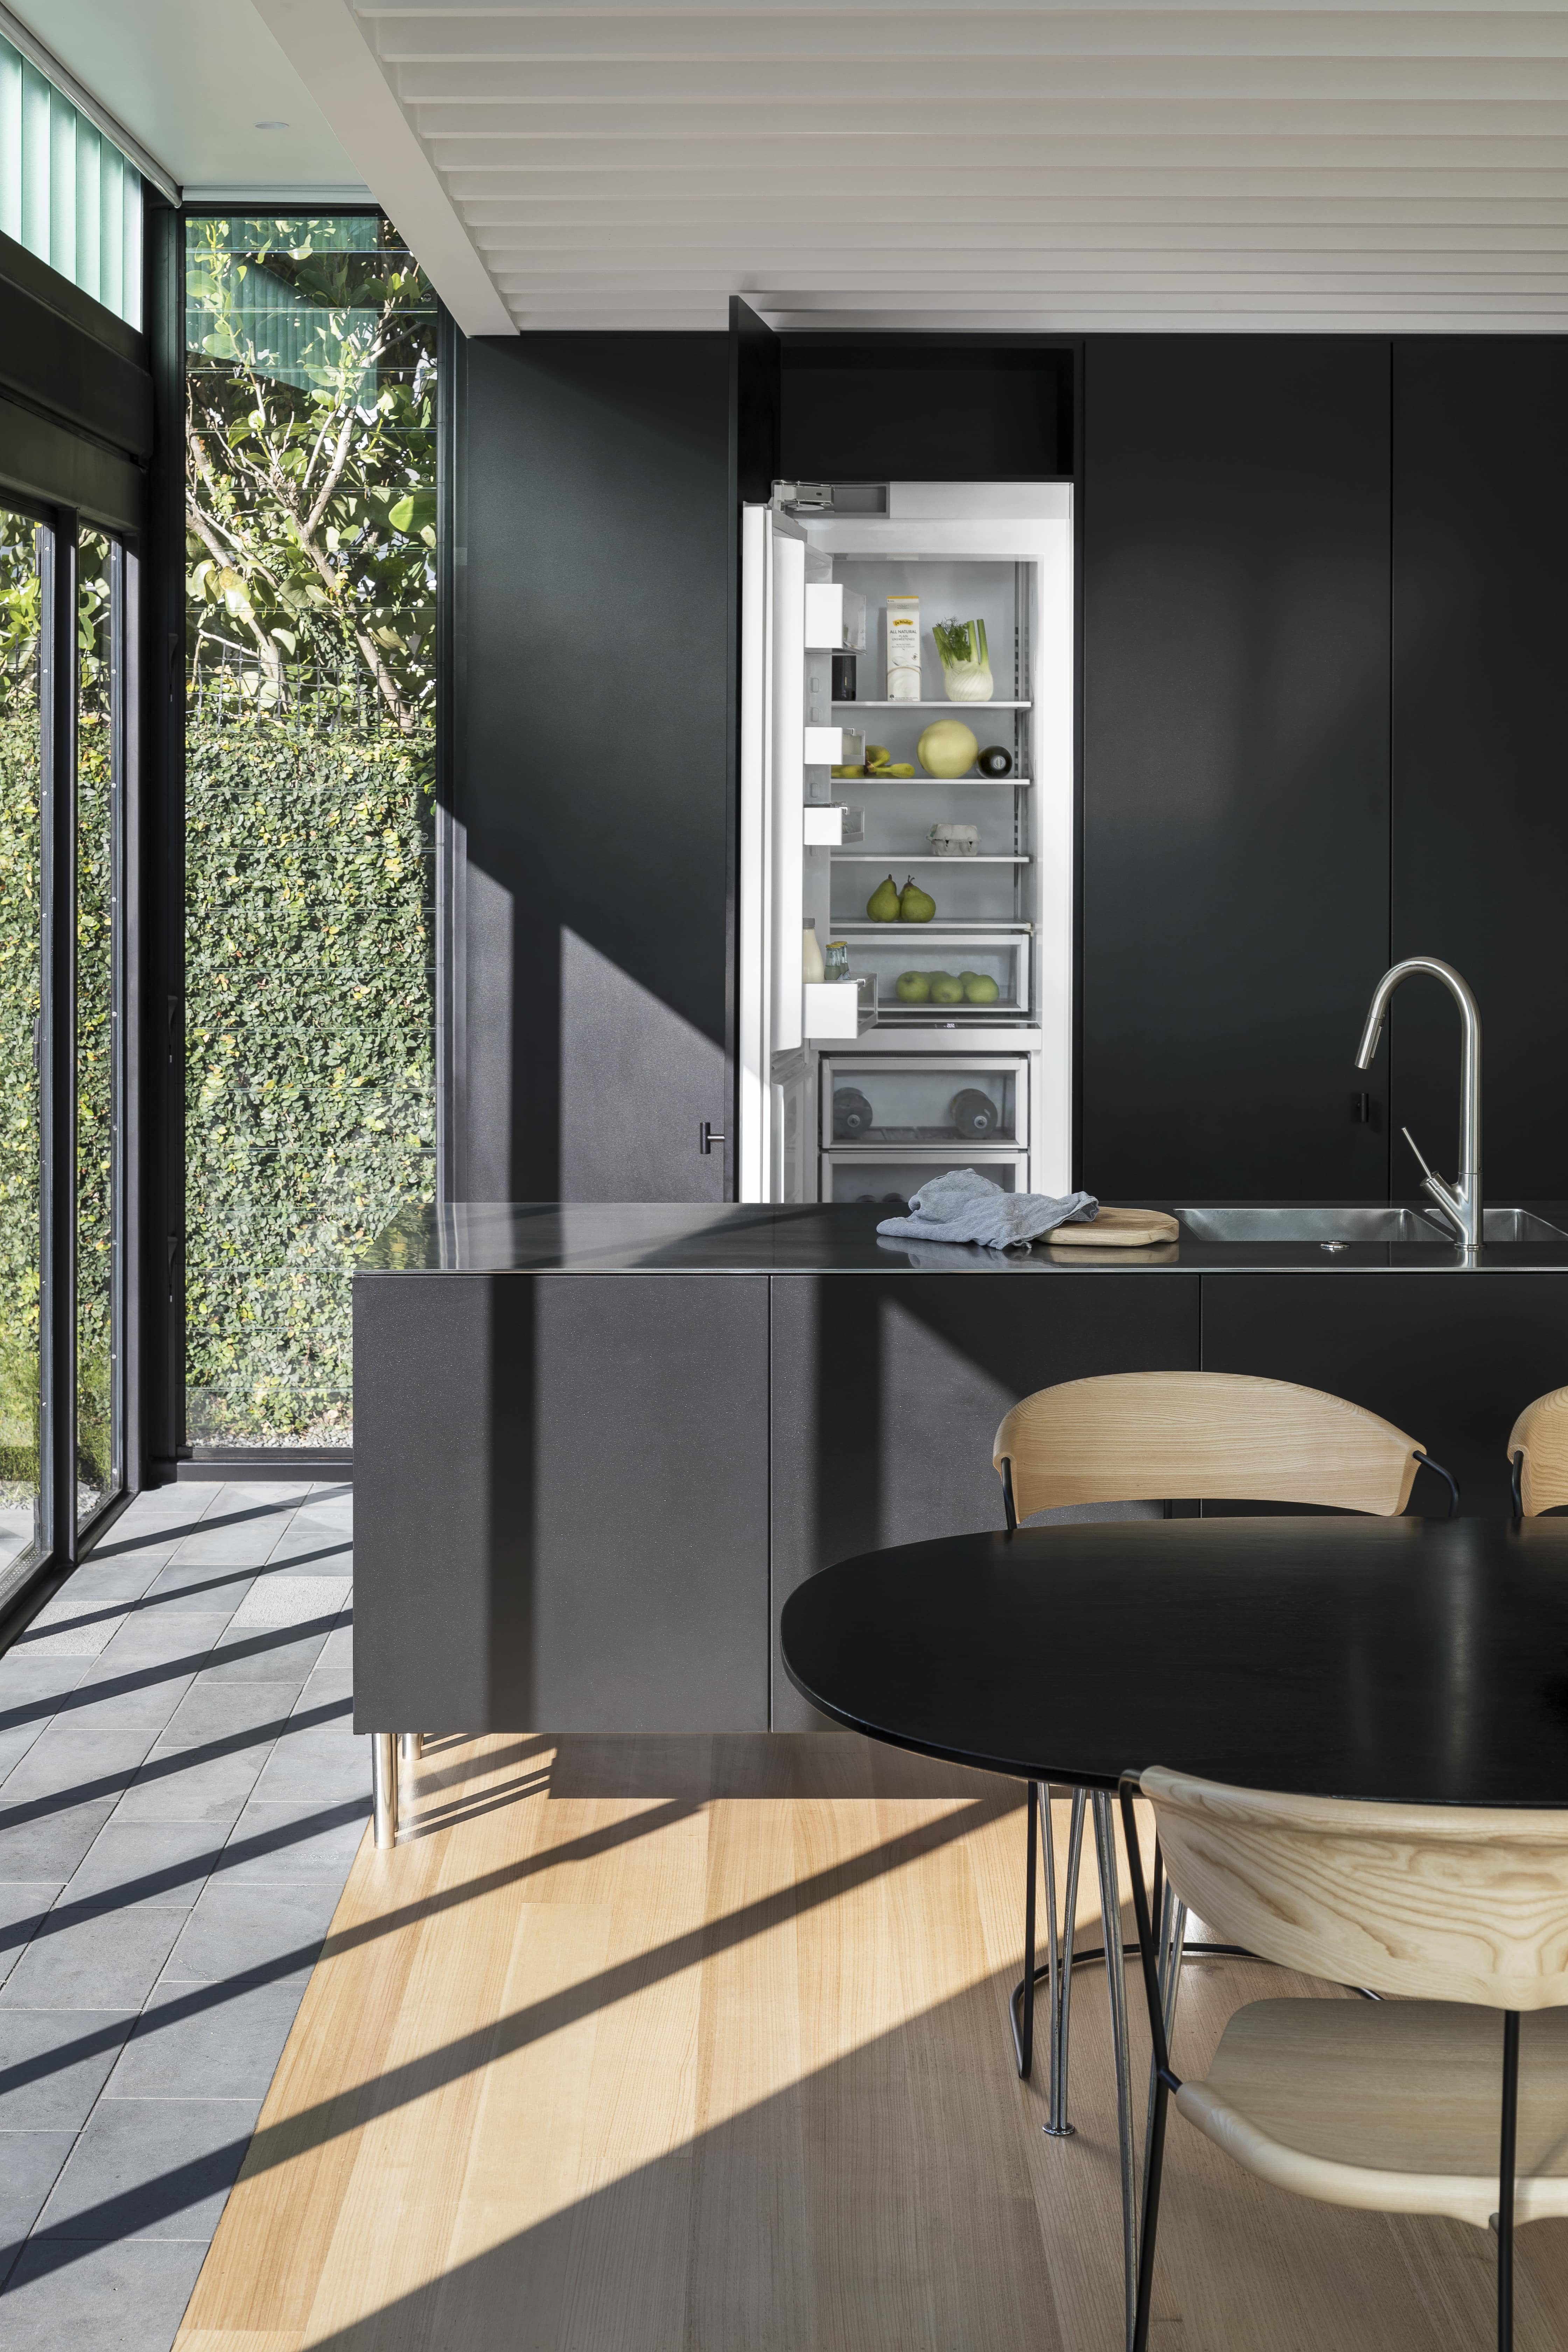 Gallery Of Column Refrigerators And Freezers By Fisher & Paykel Local Australian Architecture & Design Image 4